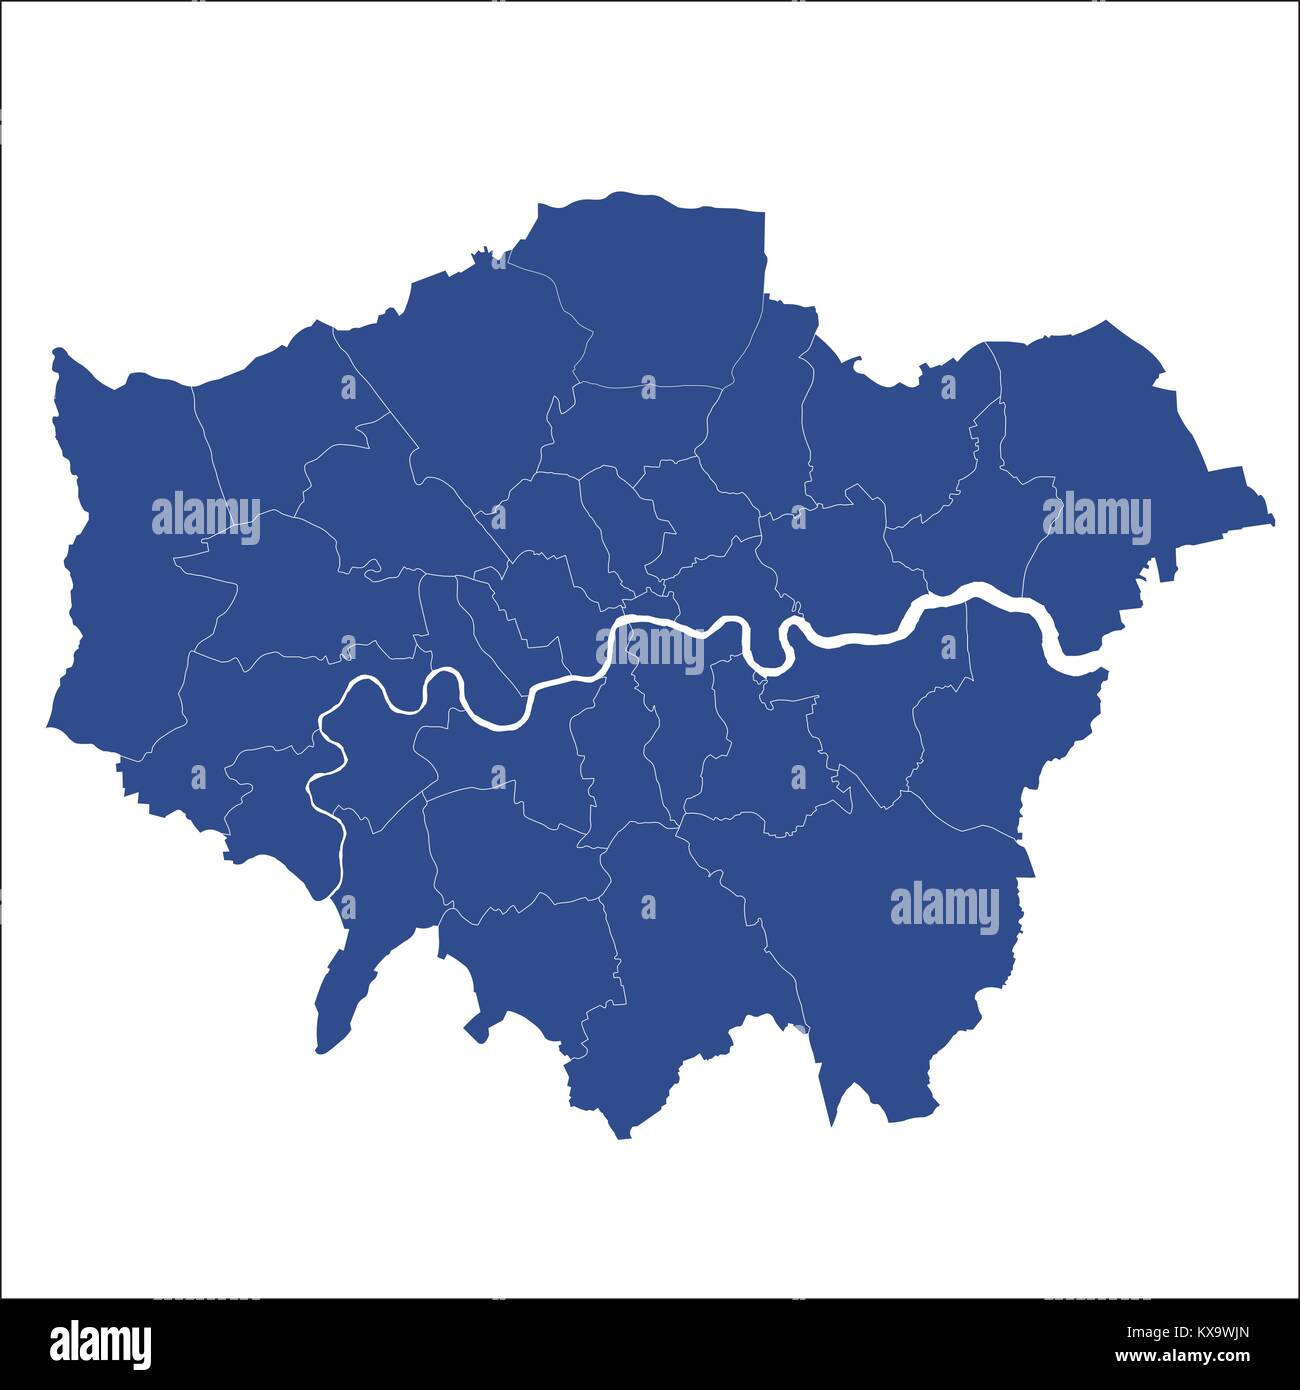 Greater London map showing all boroughs - Stock Image